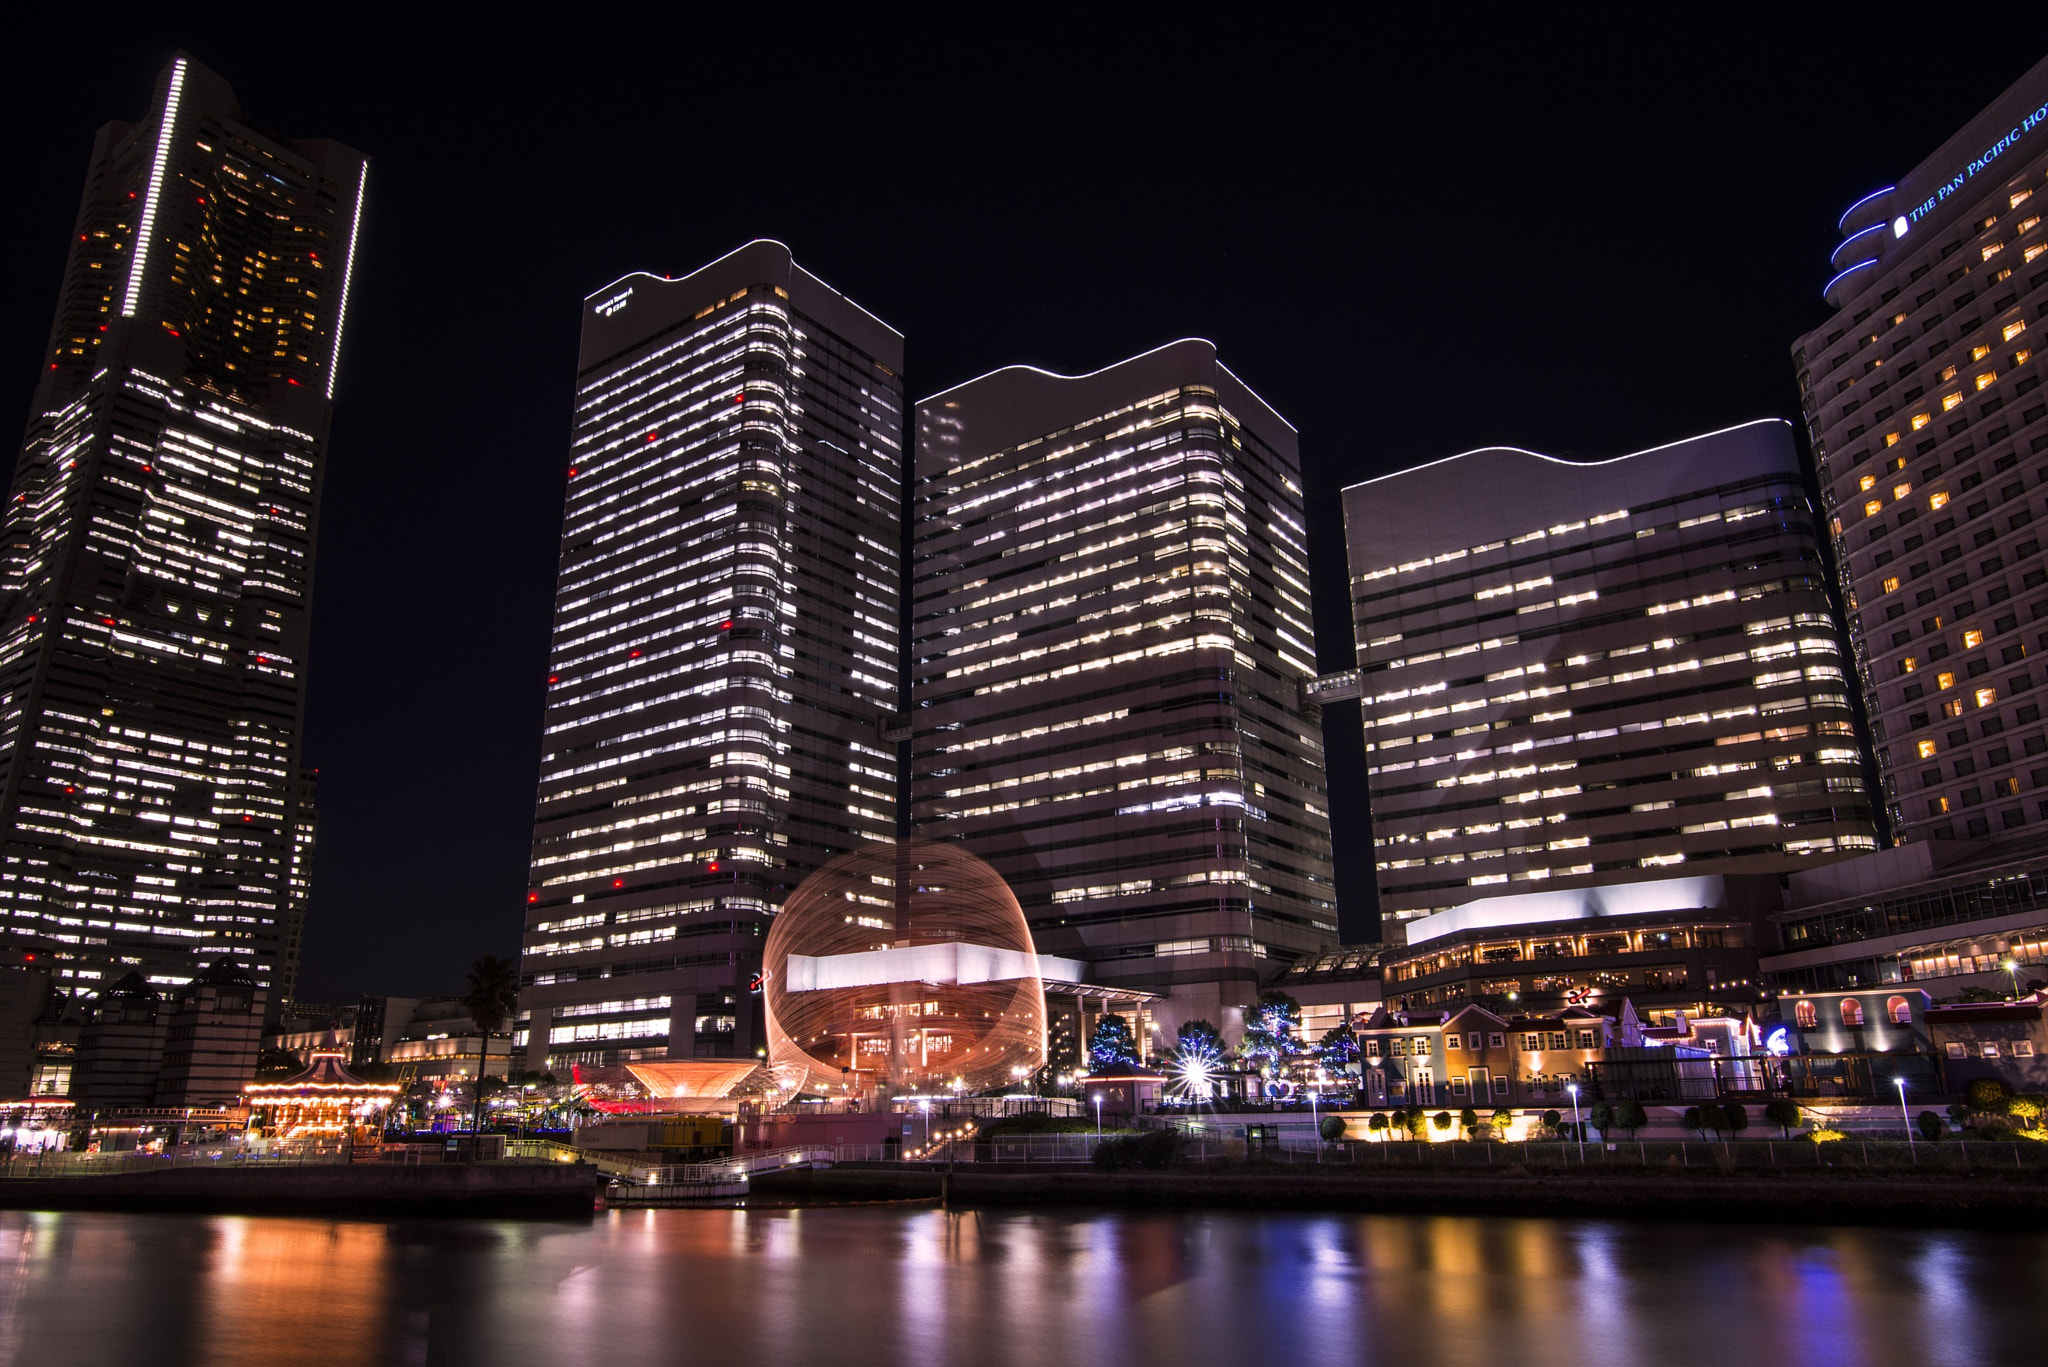 Photograph Welcome to Minato Mirai by hugh dornan on 500px